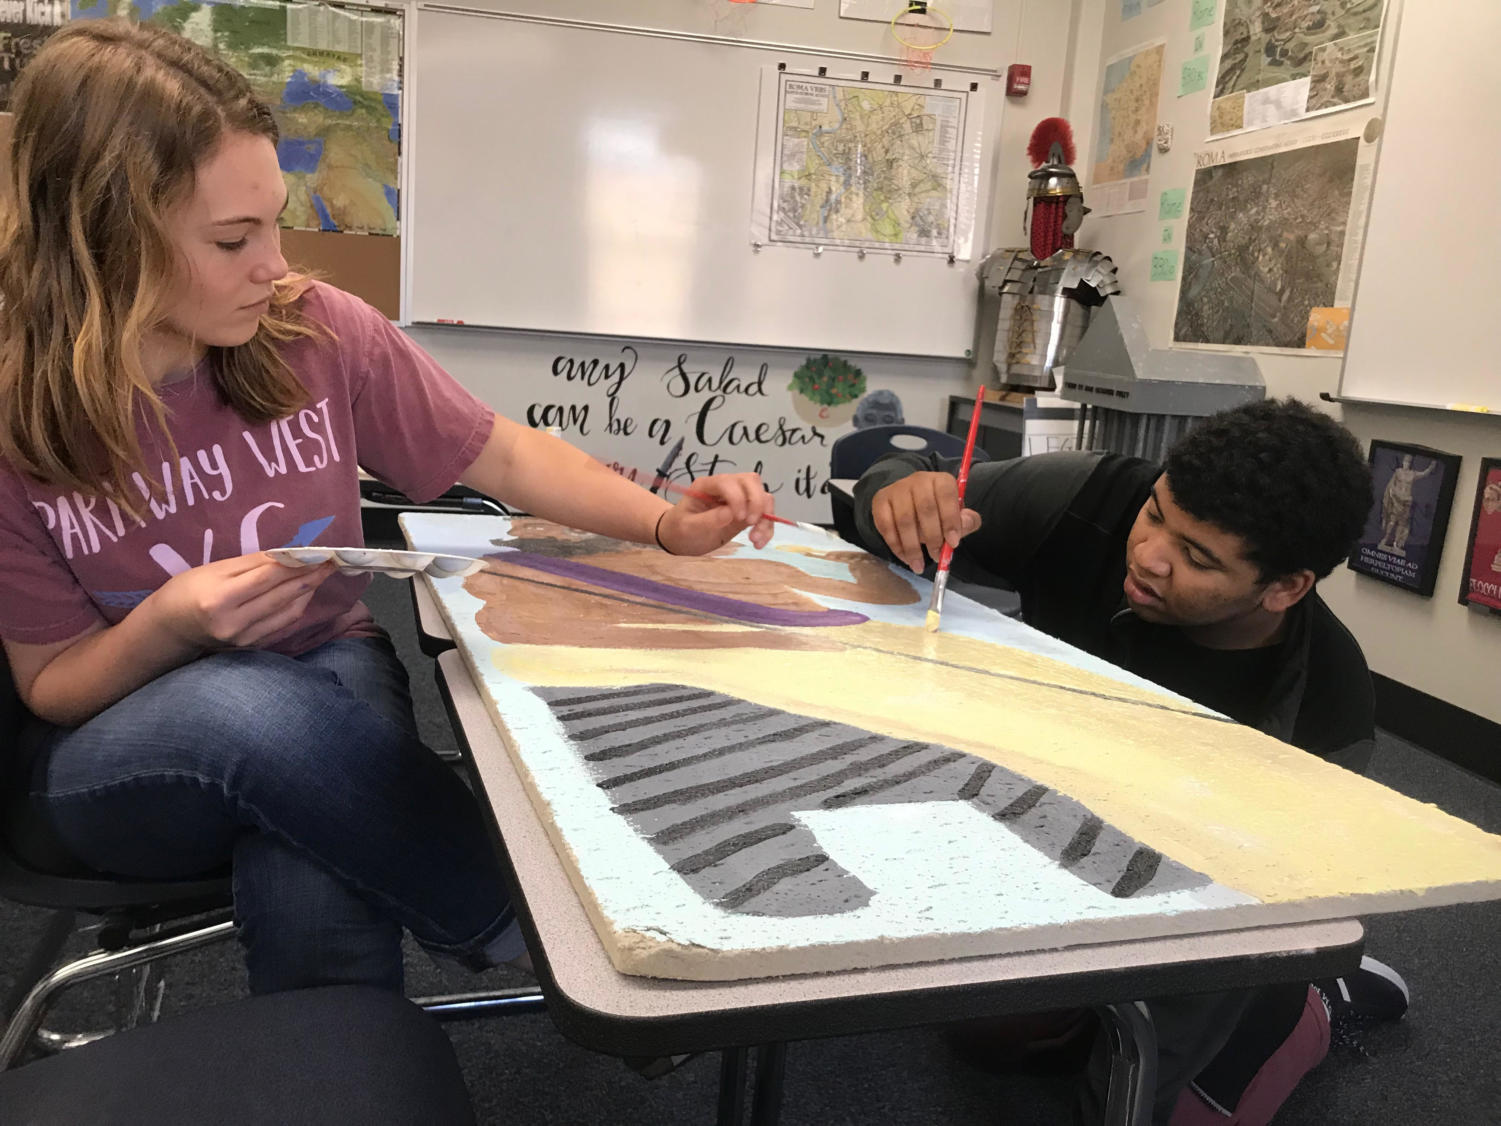 Finishing a tile for Latin teacher Tom Herpel's room, sophomores Emma Smout and Myles Mosley paint. This tile took a year to make and is being finished with the collaborative effort of Smout, Mosley, and sophomore Reese Berry.